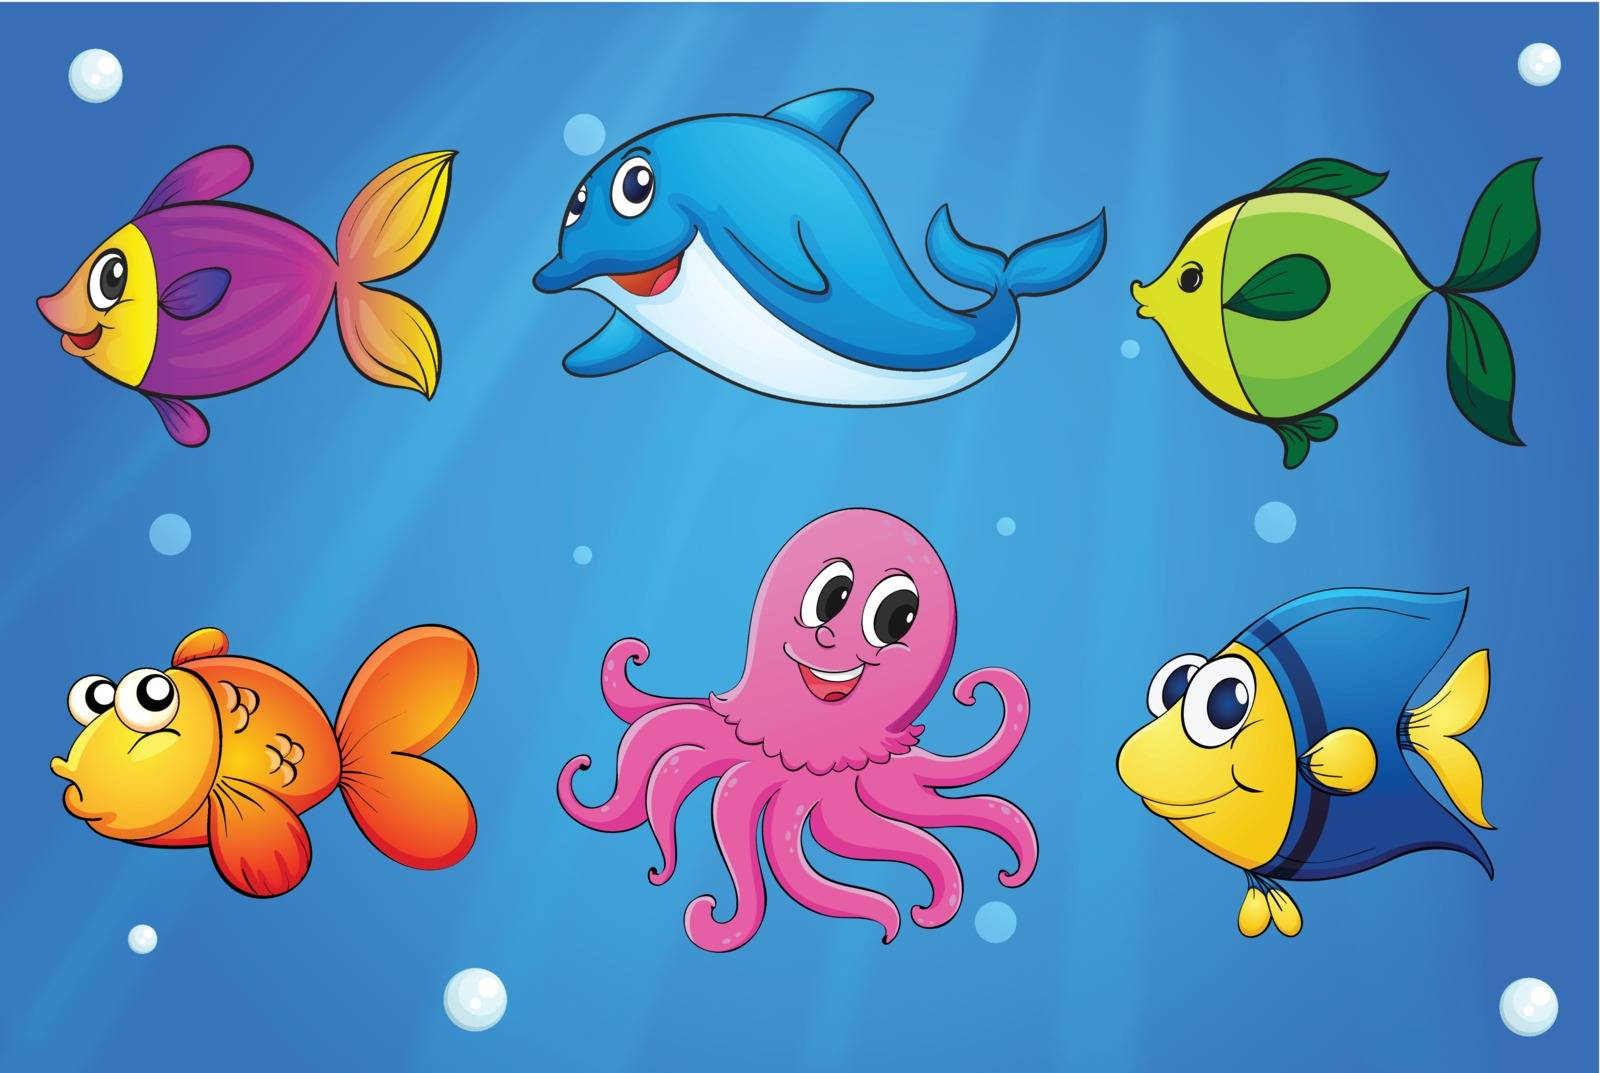 Illustration of the sea creatures under the sea